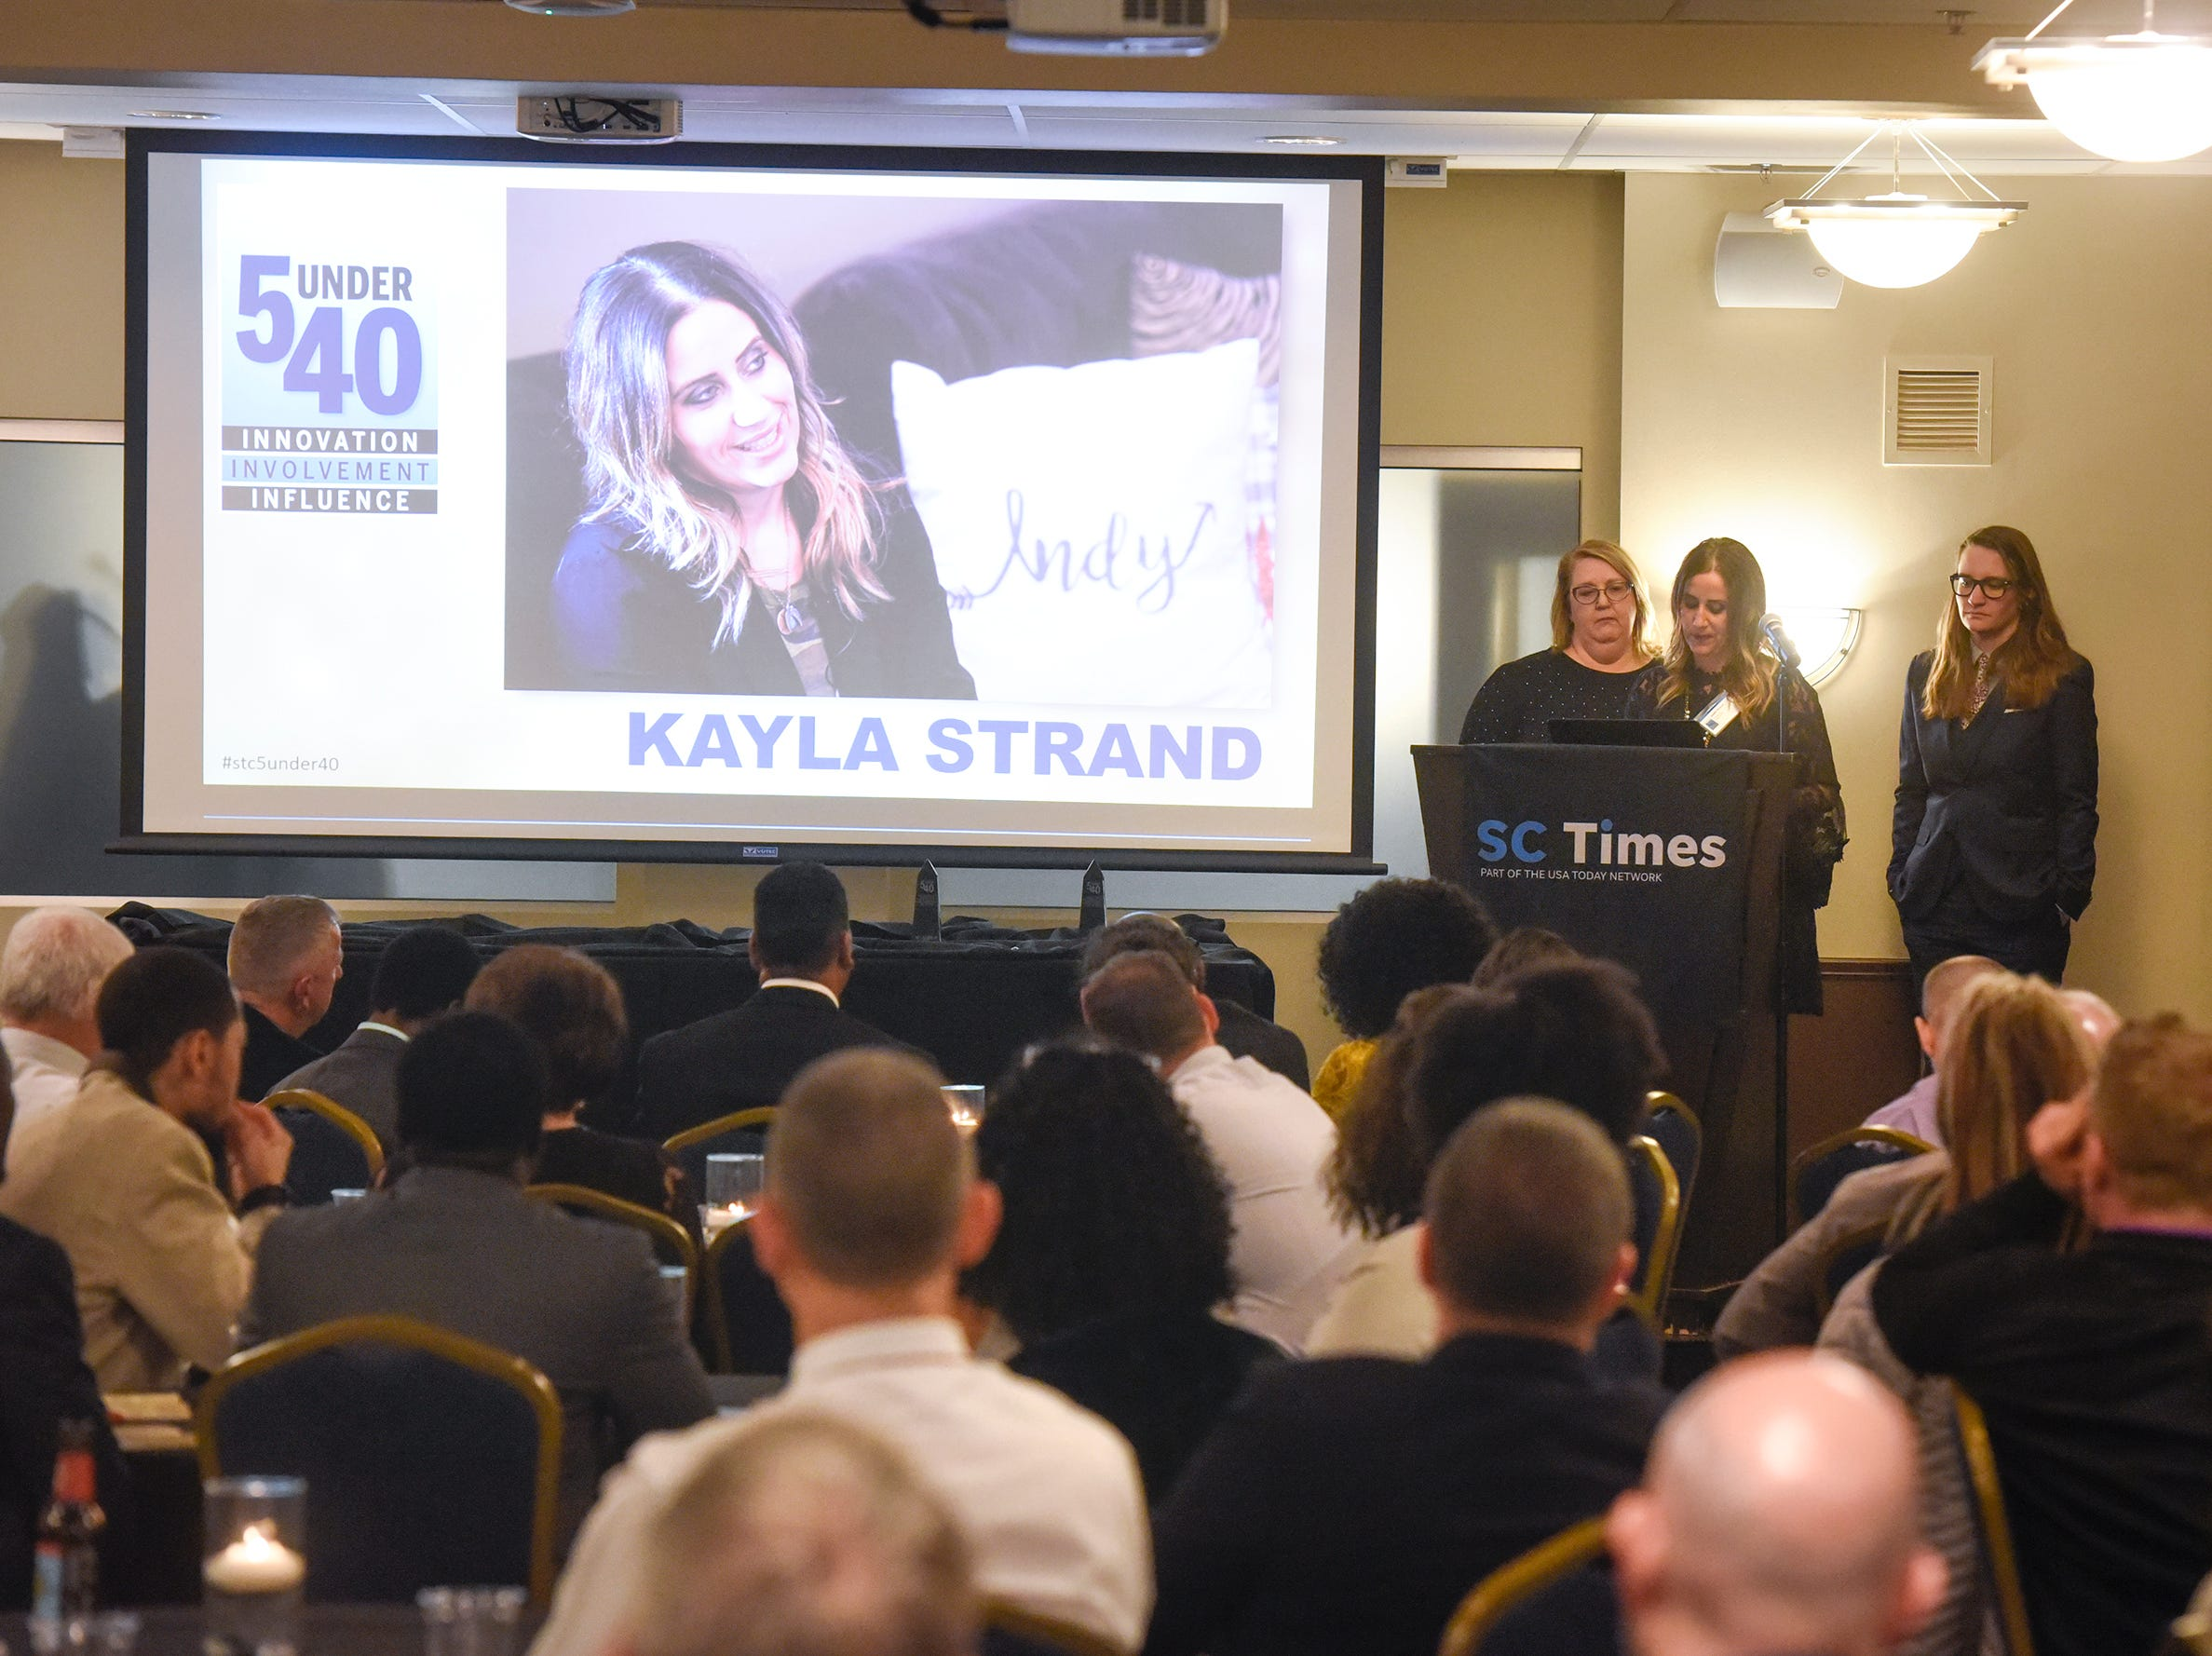 Kayla Strand speaks after receiving her award during the 5 Under 40 Awards program Tuesday, Jan. 15, in St. Cloud.